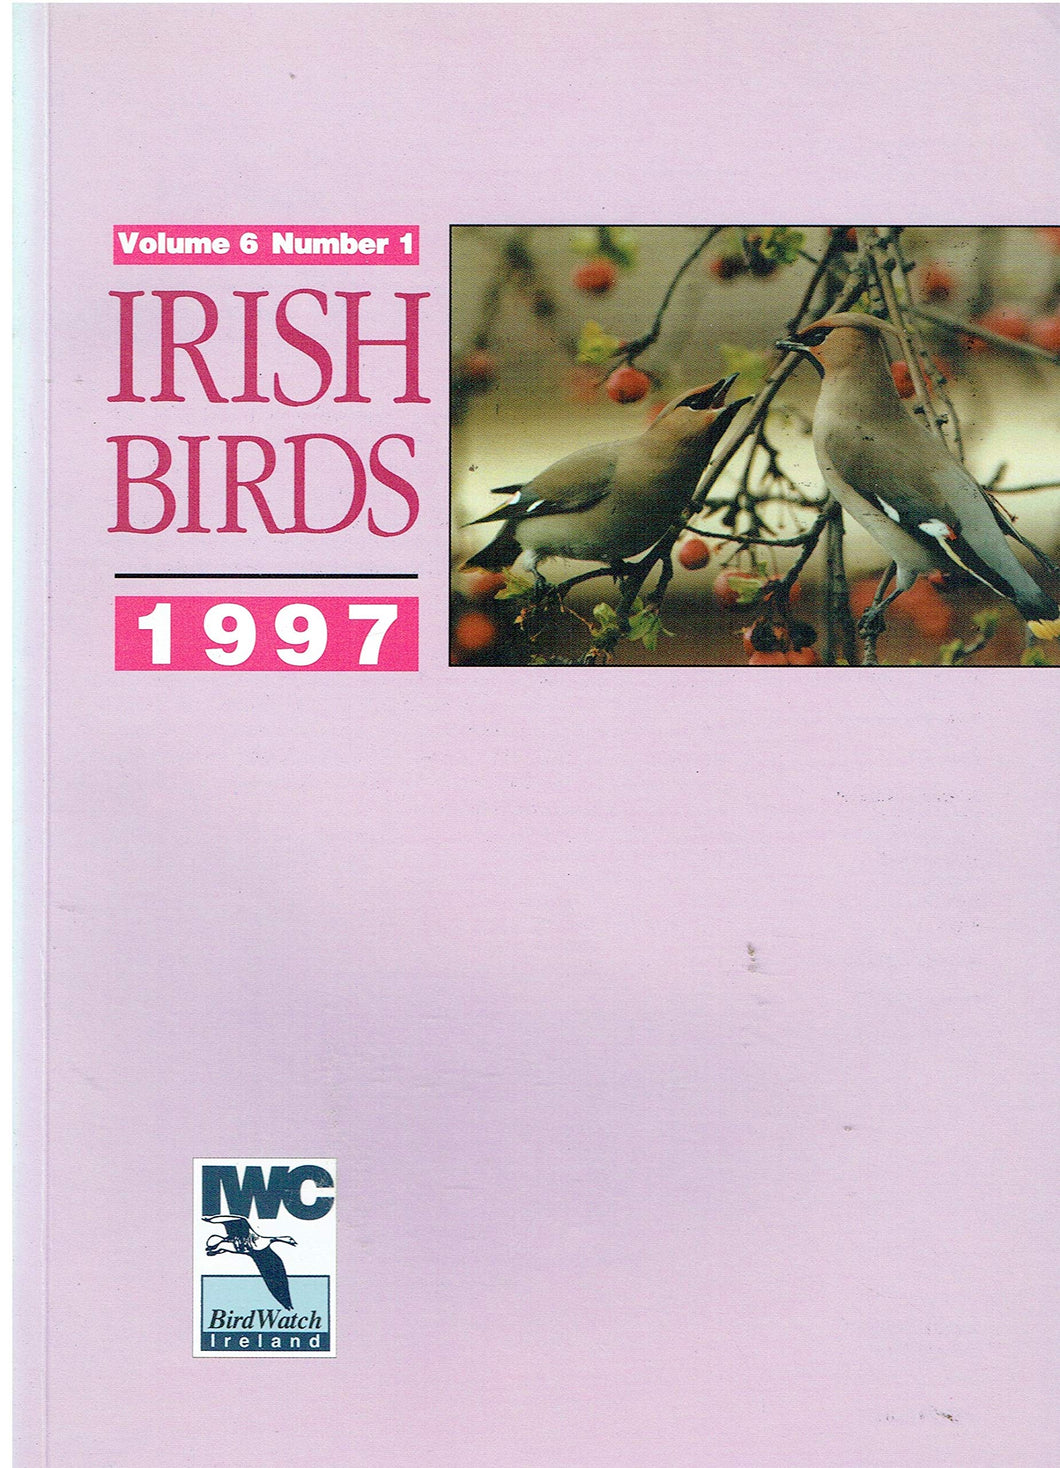 Irish Birds, 1997 - Volume 6 Number 1